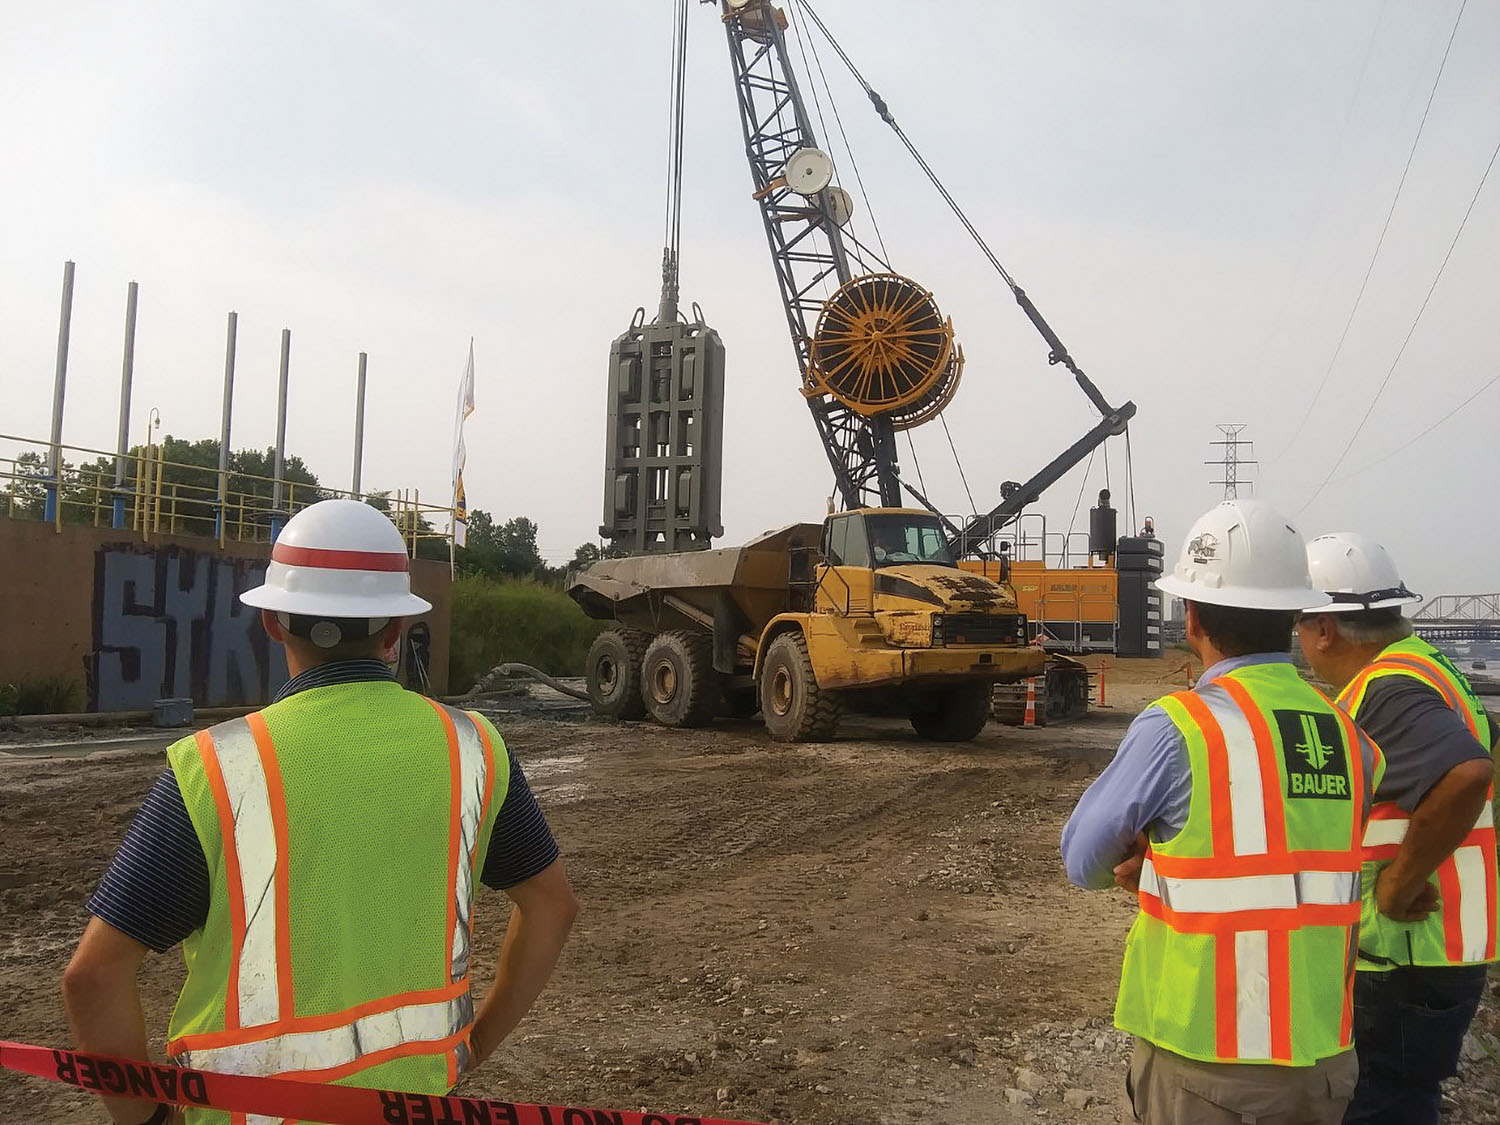 Members of the project team for the East St. Louis seepage wall project look on as a Bauer MC-96 rig in a clamshell configuration removes subsoil on the east bank of the Mississippi River just north of downtown St. Louis. The seepage wall, due to be completed in the fall of 2022, is the largest project of its type and will protect the levee system against under-seepage. (Photo by David Murray)